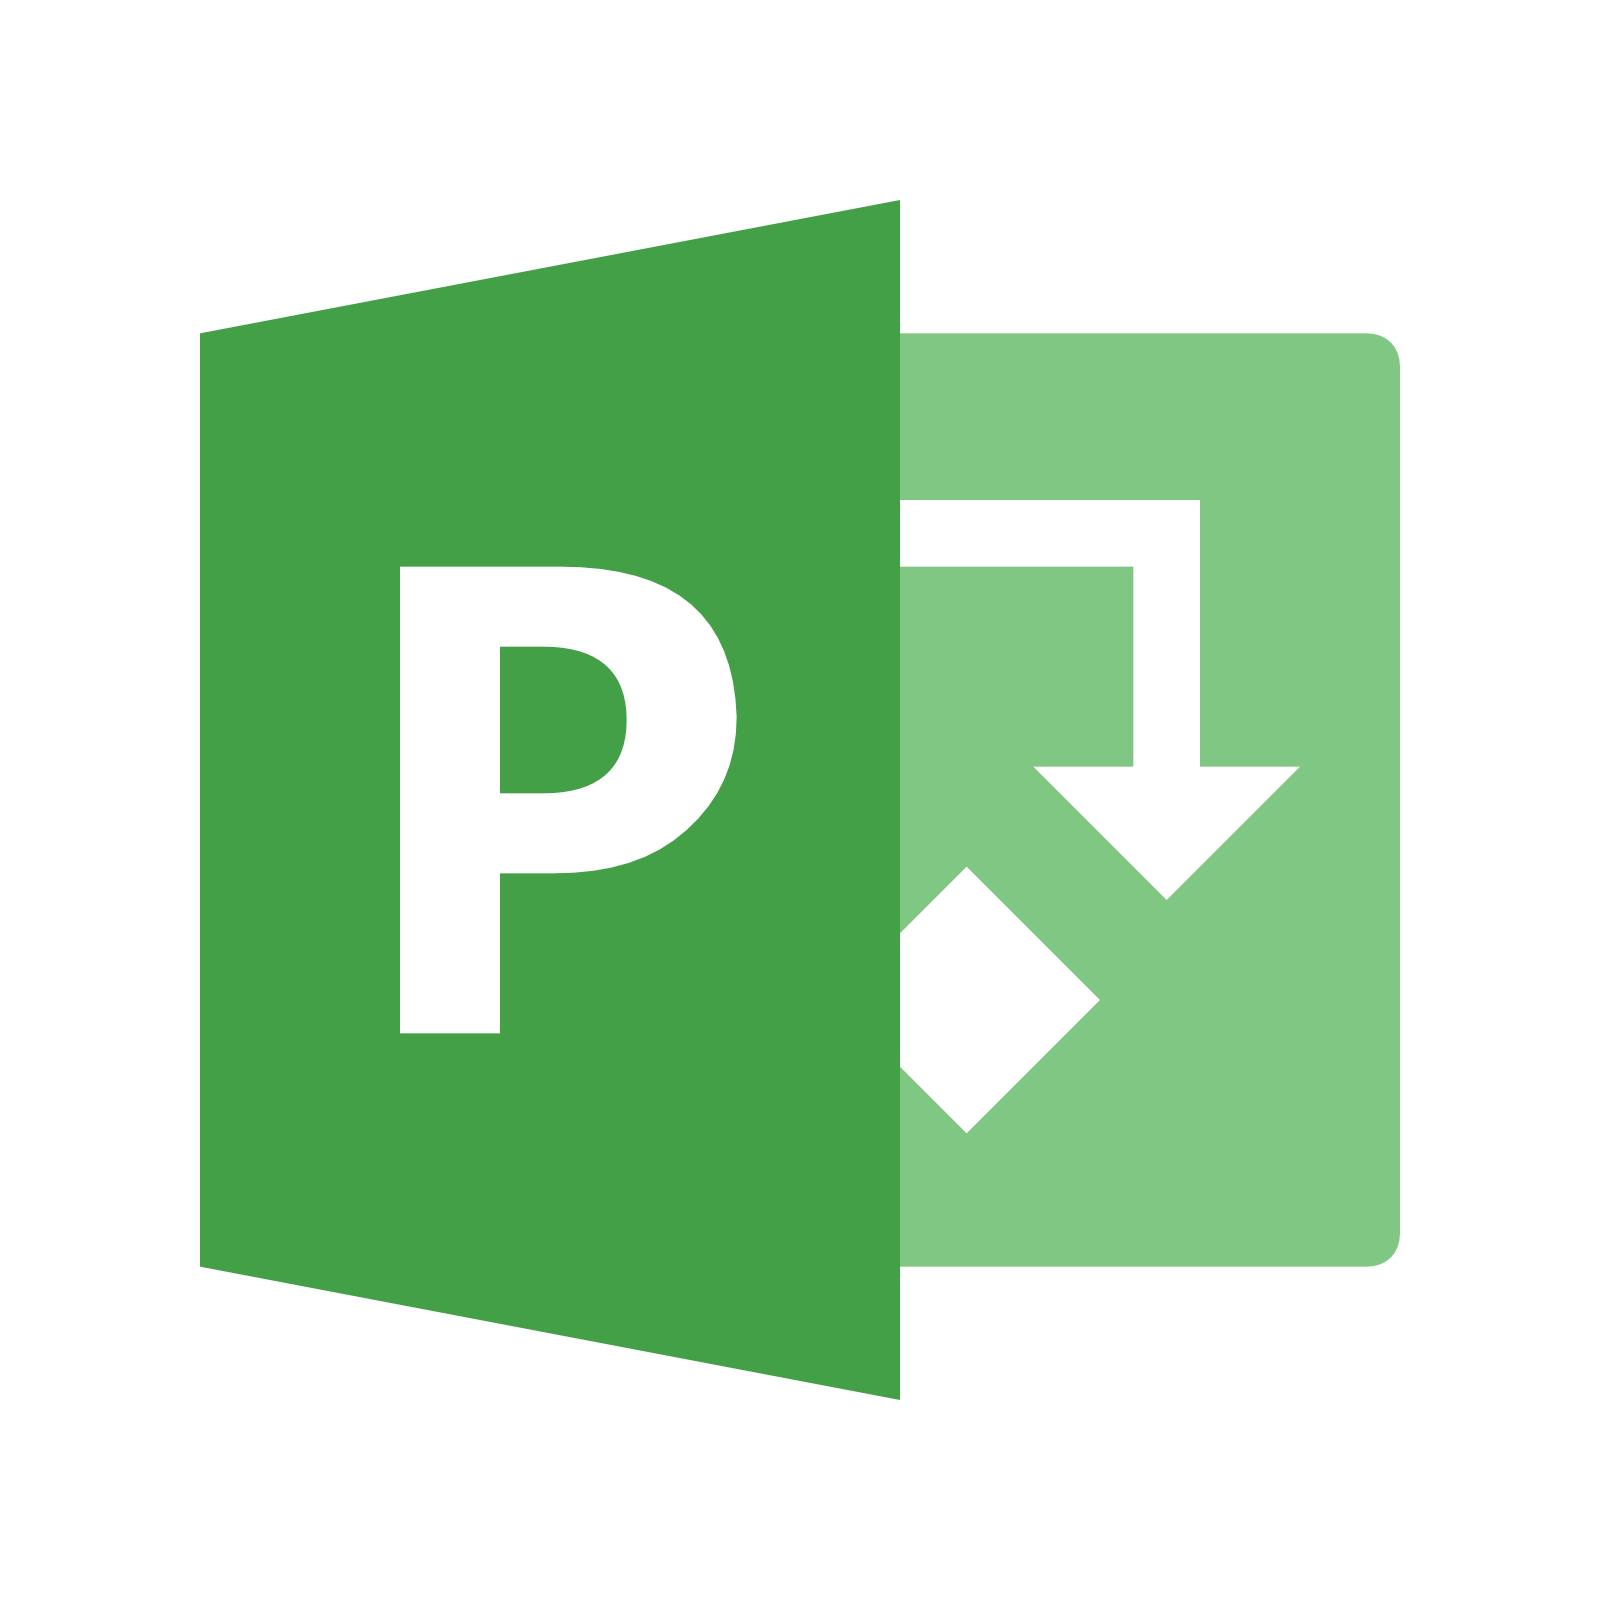 Microsoft project advanced training pdf